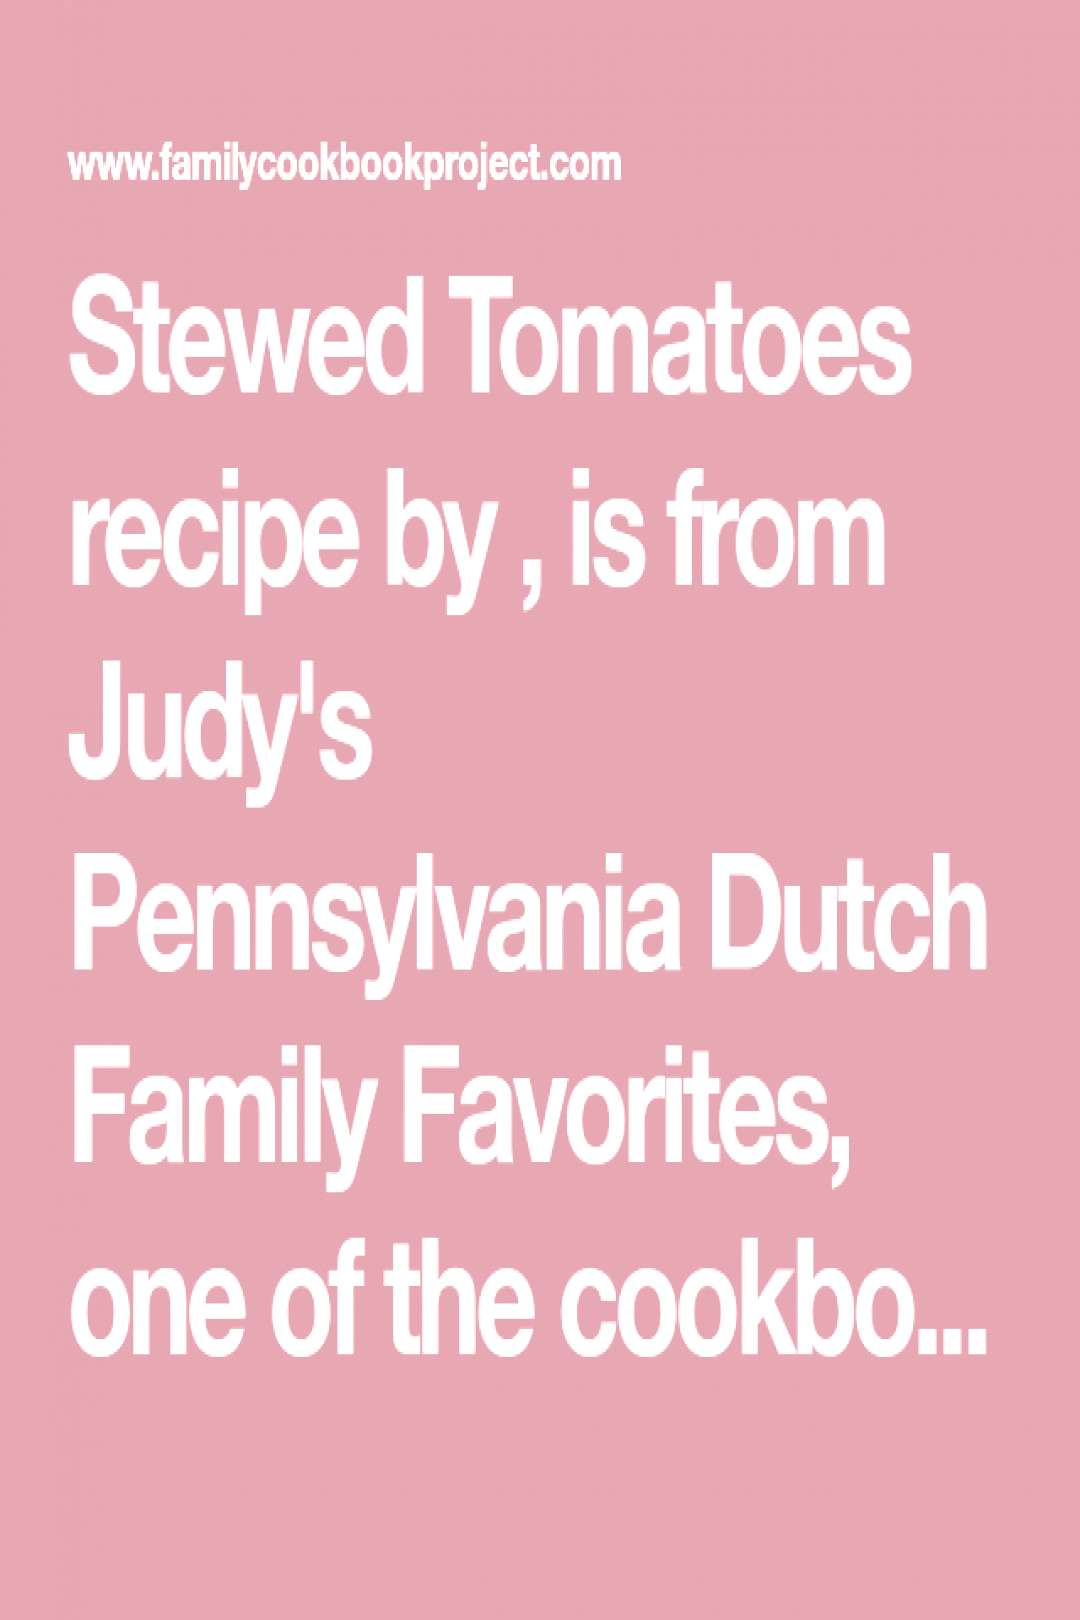 Stewed Tomatoes recipe by , is from Judy's Pennsylvania Dutch Family Favorites, ... - -